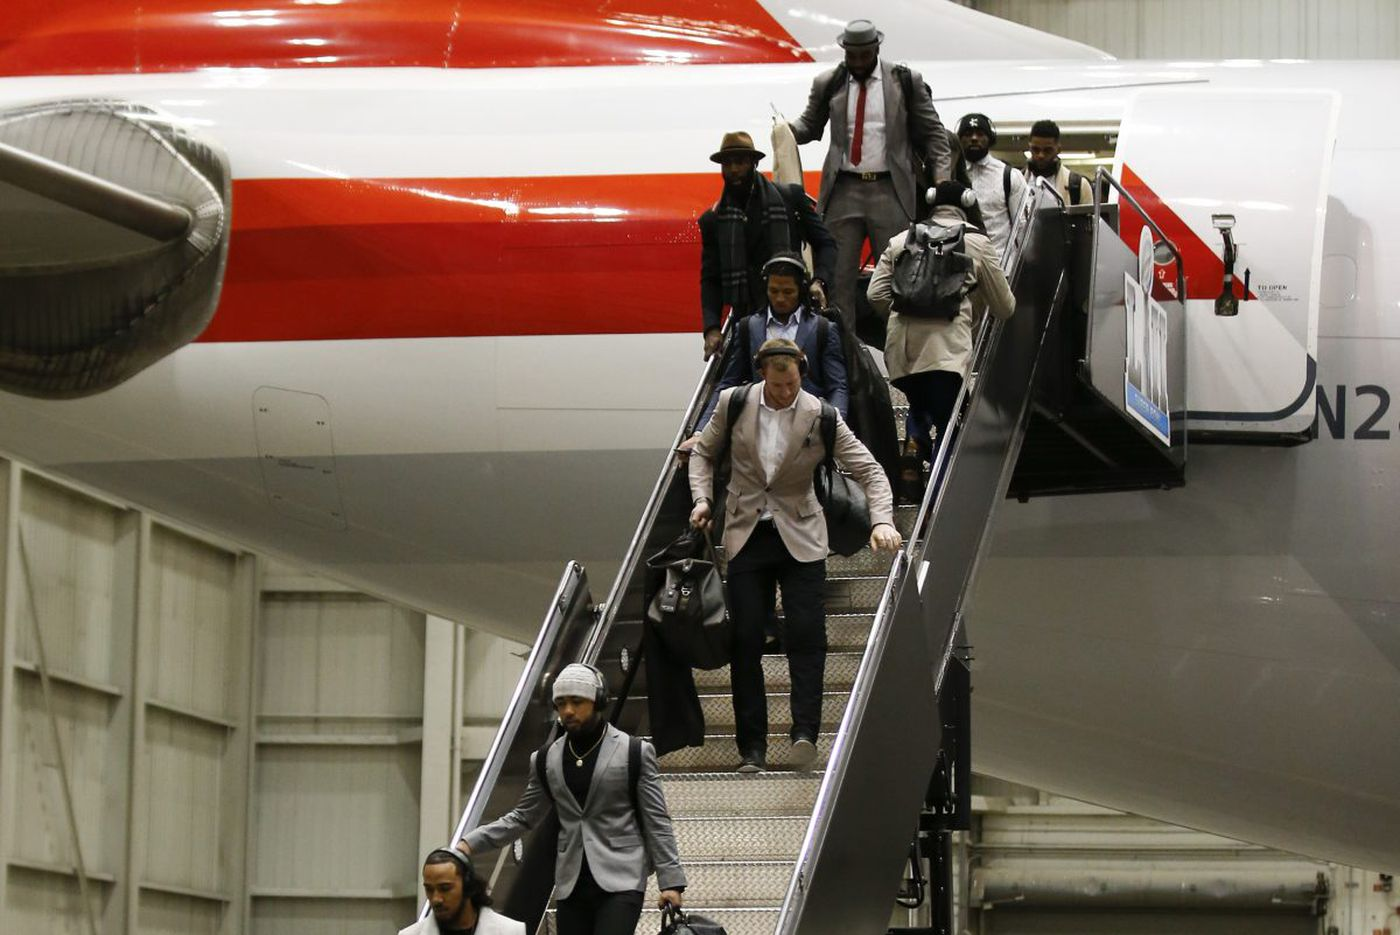 Super arrival: Eagles have touched down in Minnesota for the Super Bowl